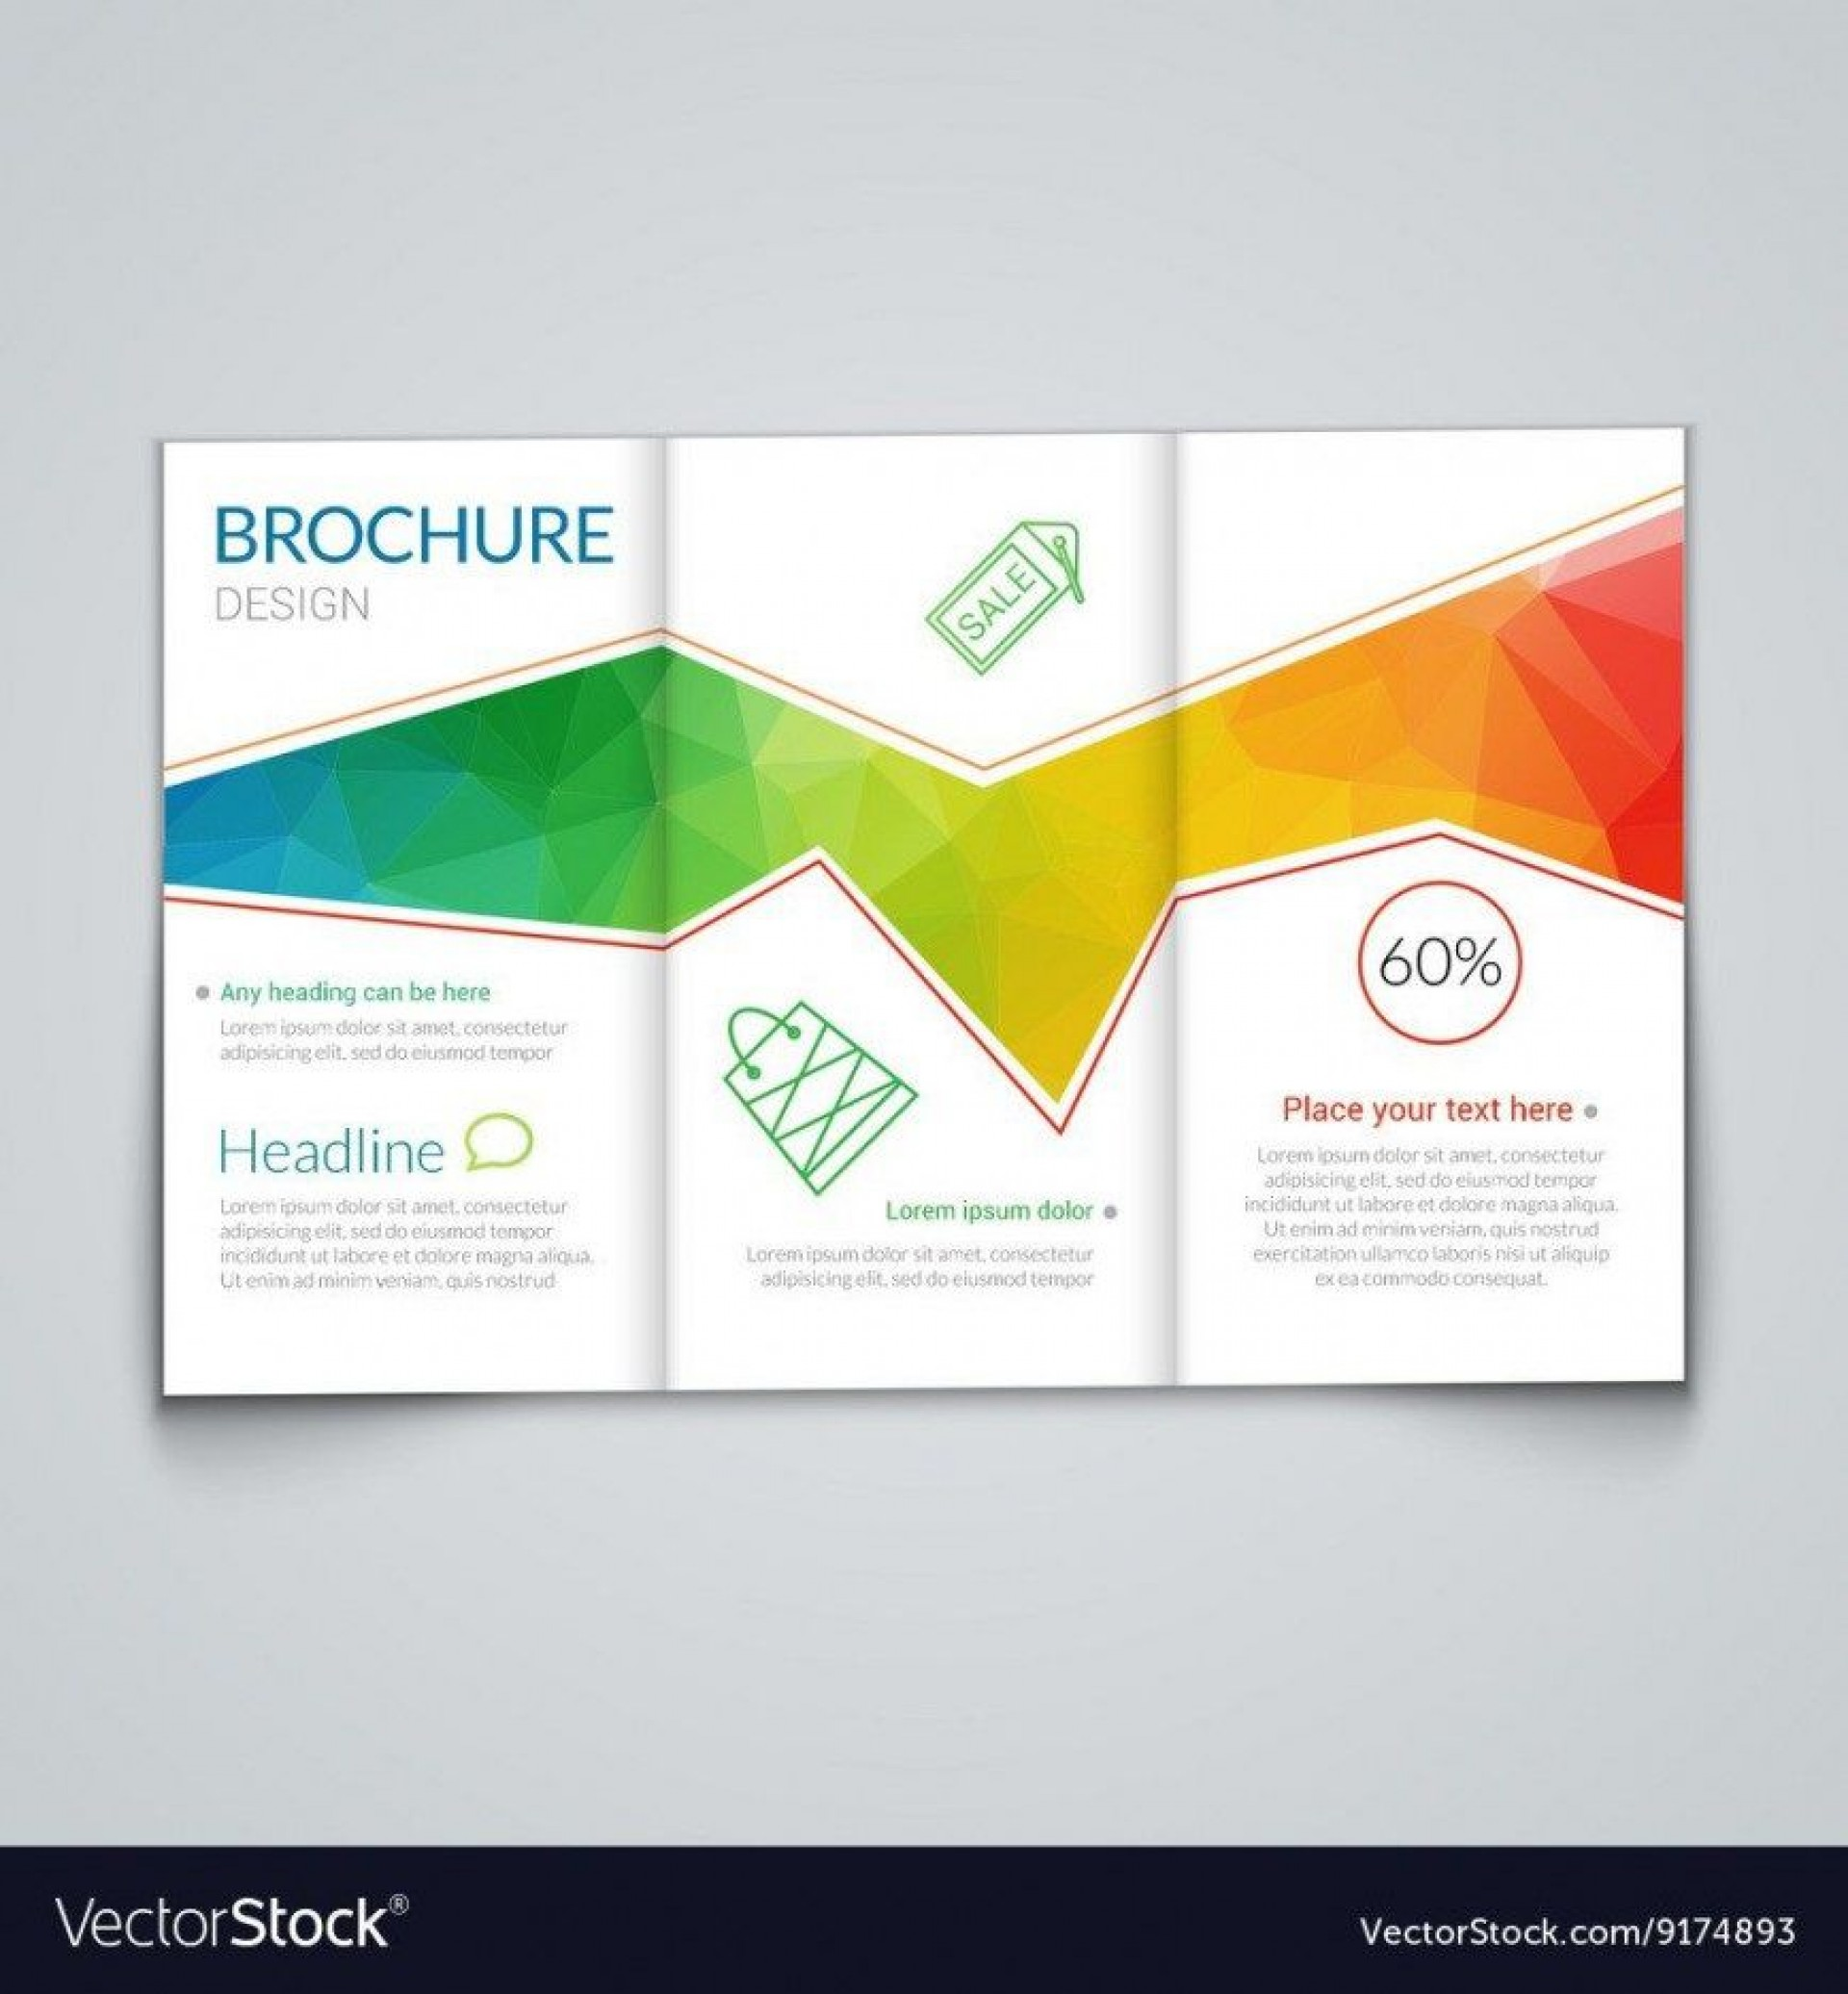 008 Incredible Download Brochure Template For Word 2007 Highest Clarity 1920